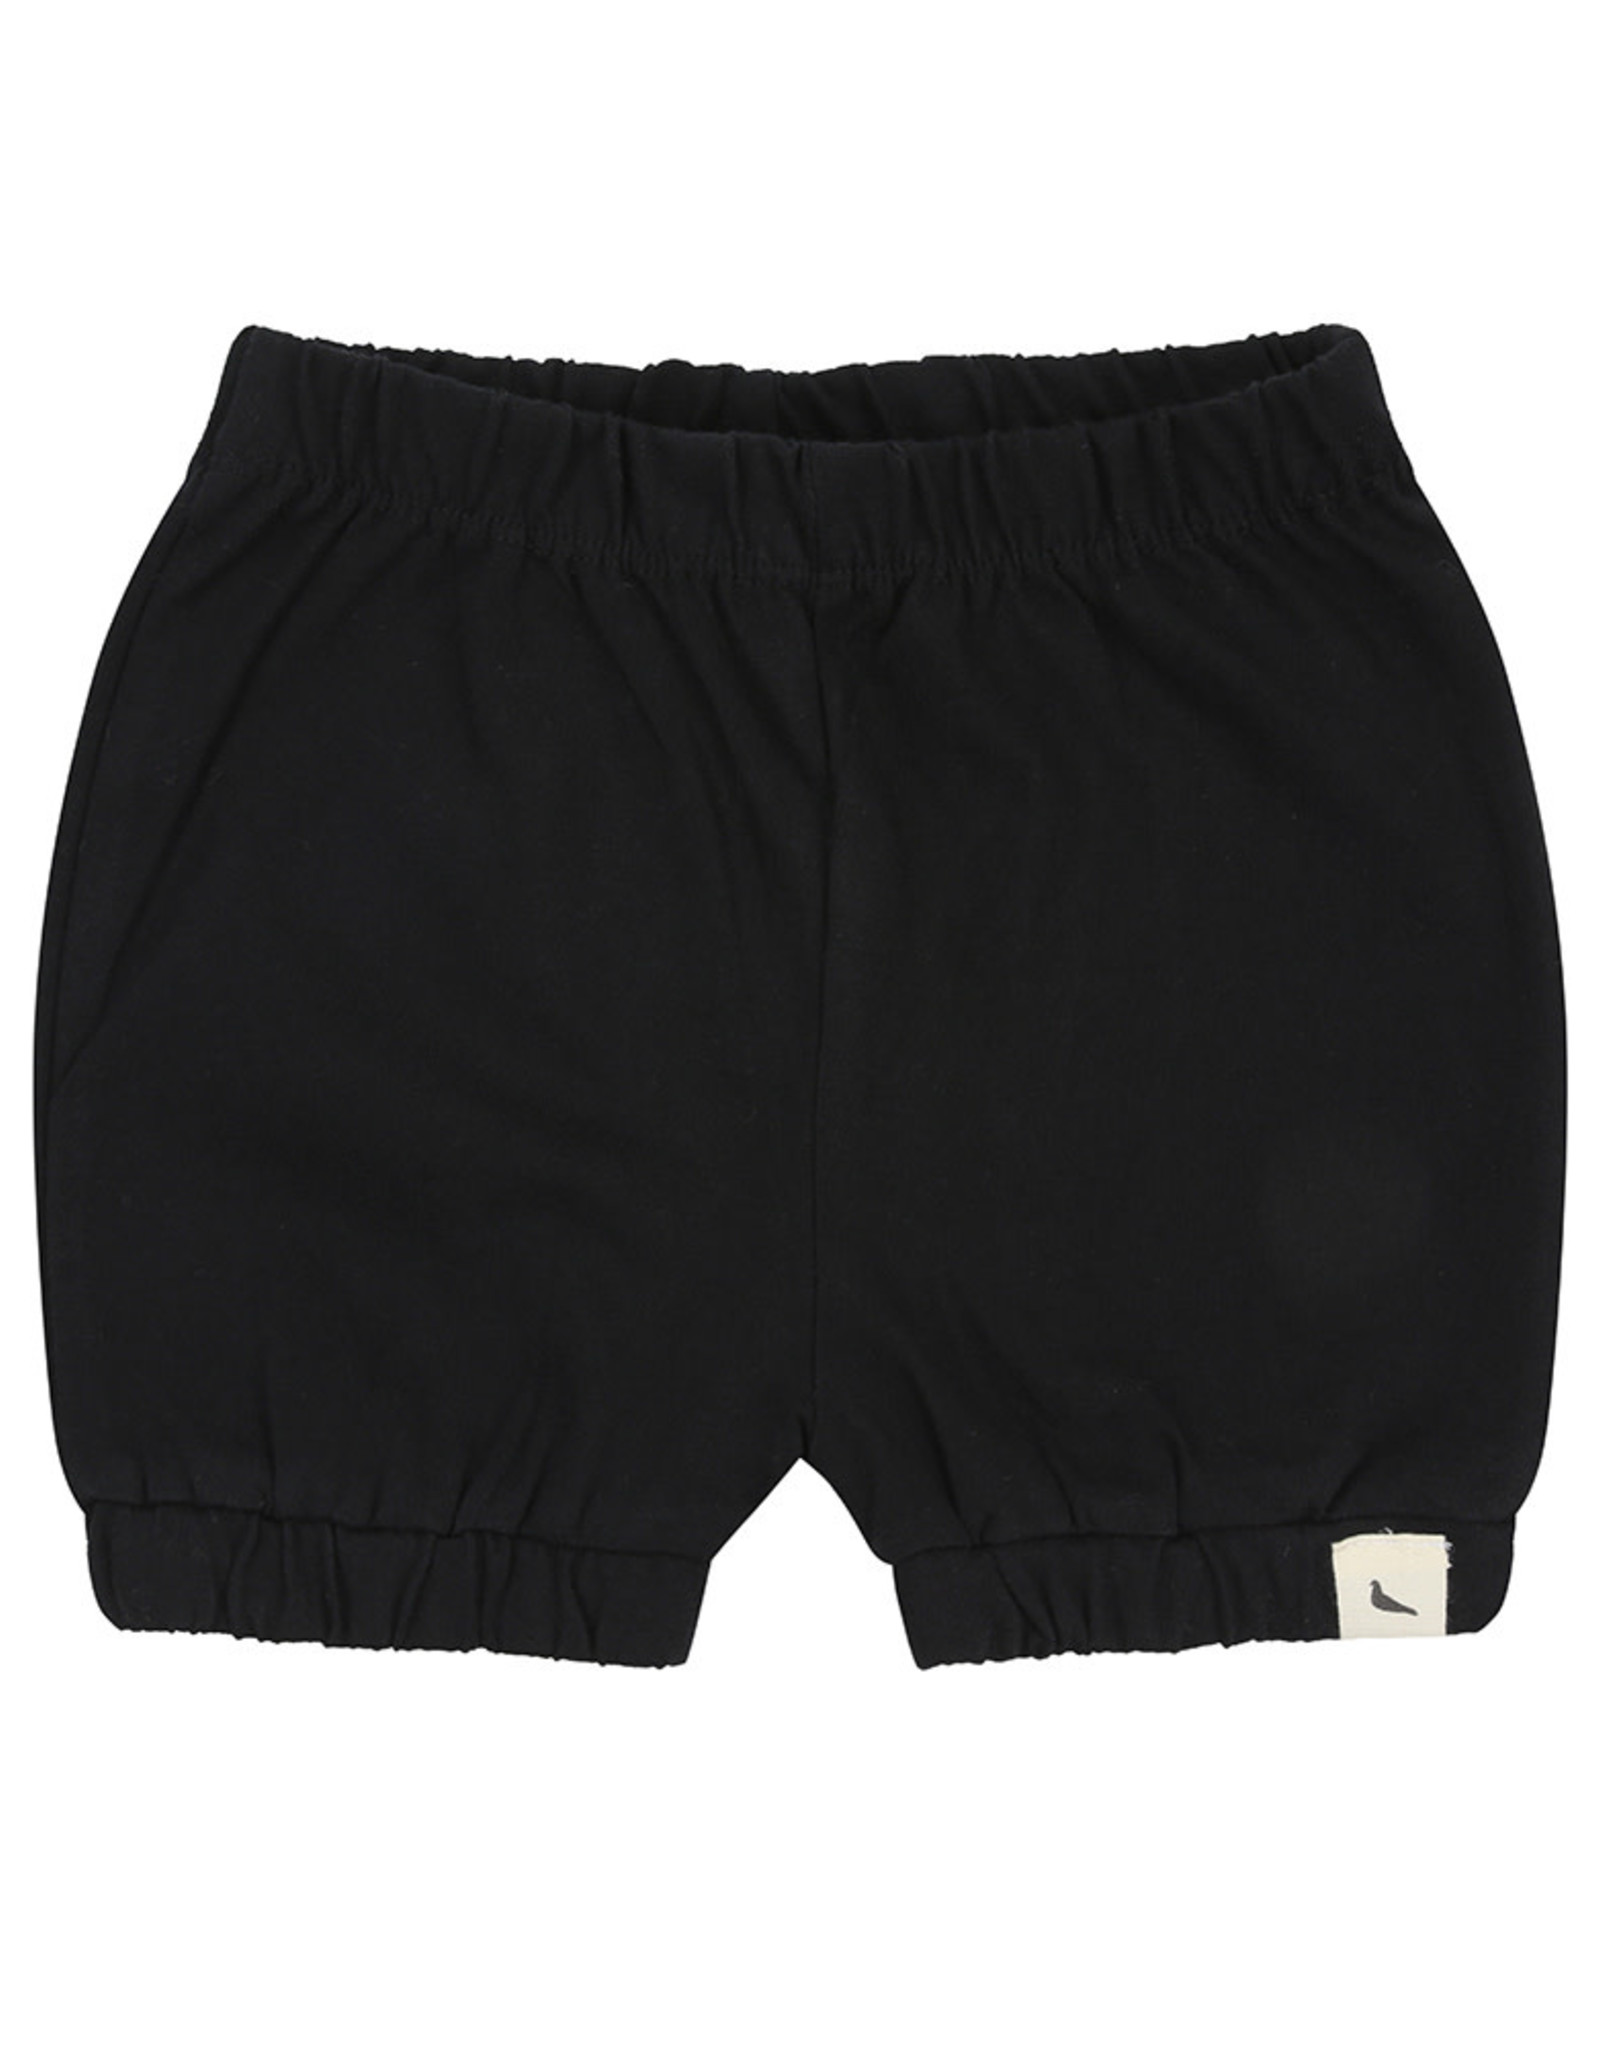 Turtledove London jersey bloomers- black